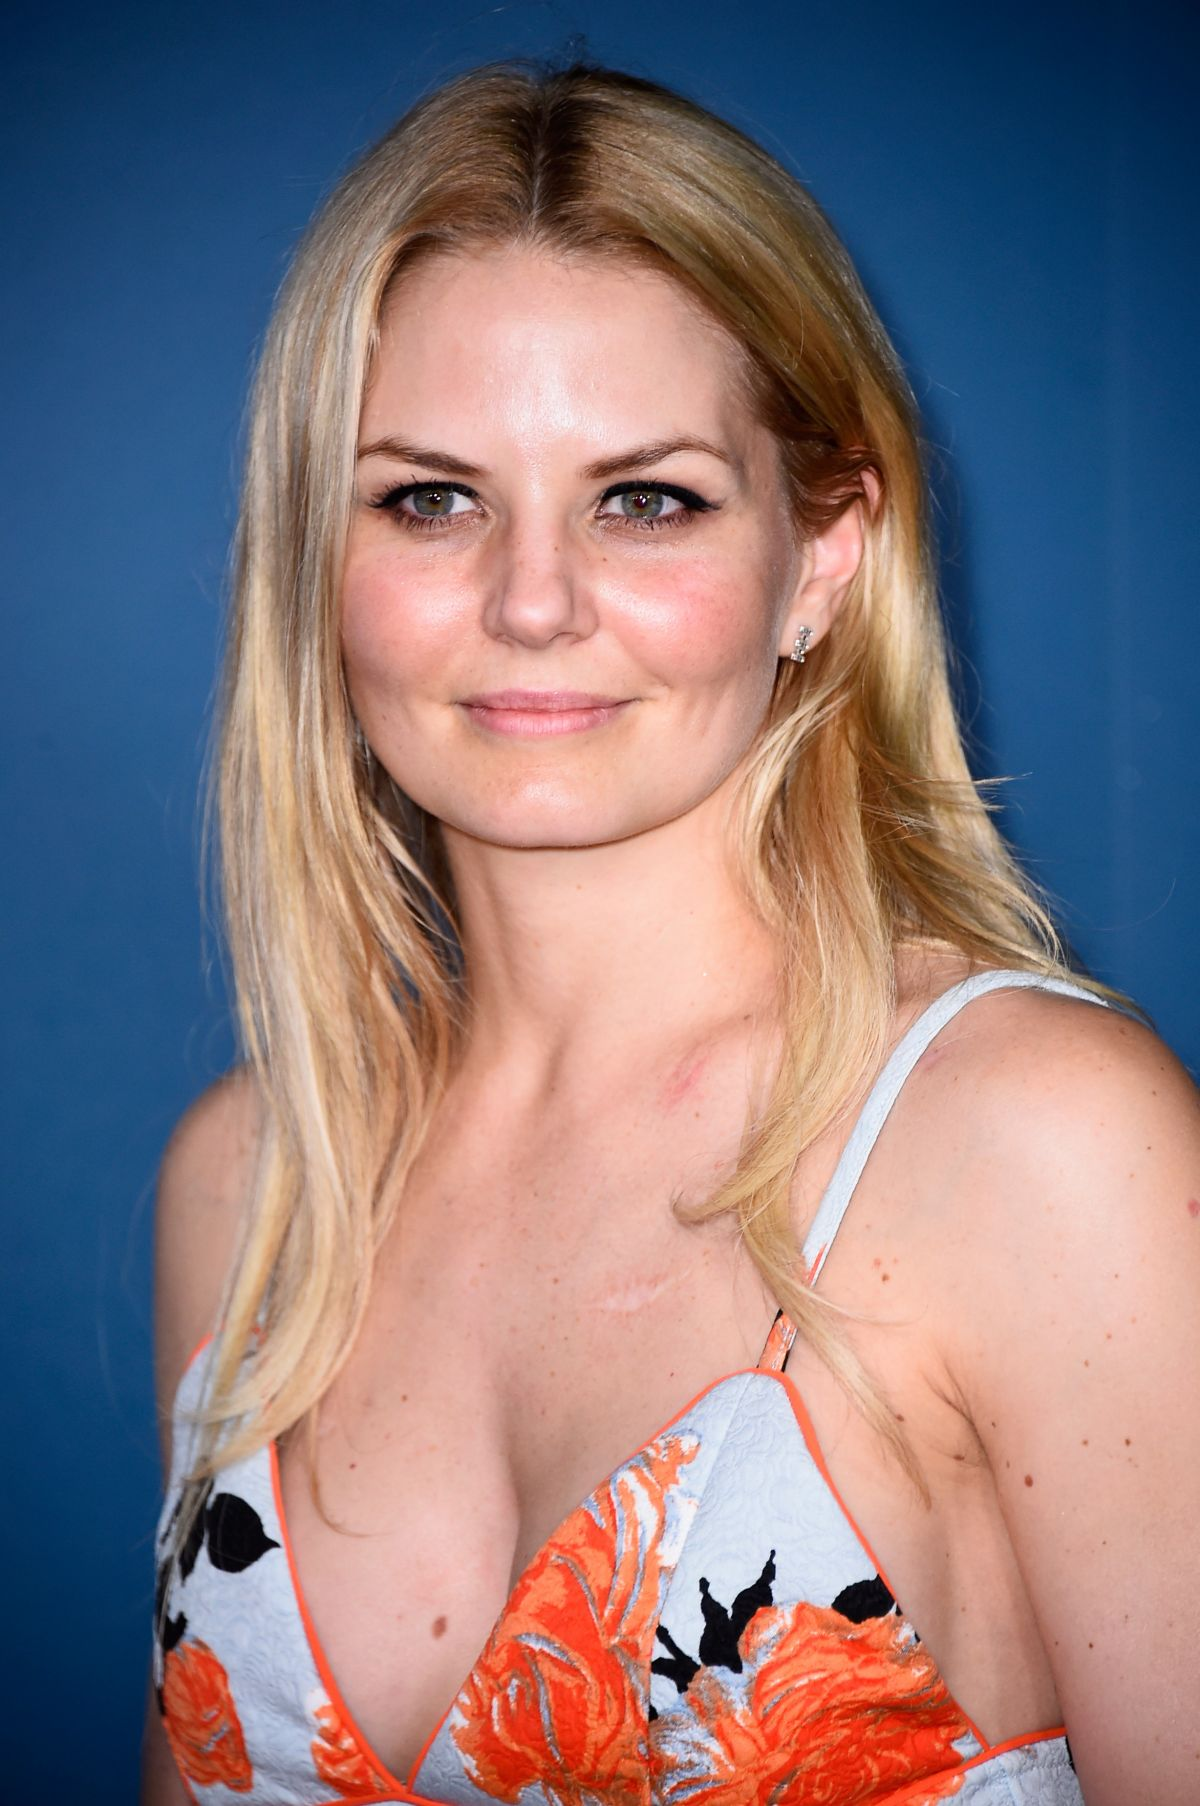 Les sosies du catch Jennifer-morrison-at-playboy-party-at-comic-con-in-san-diego_1